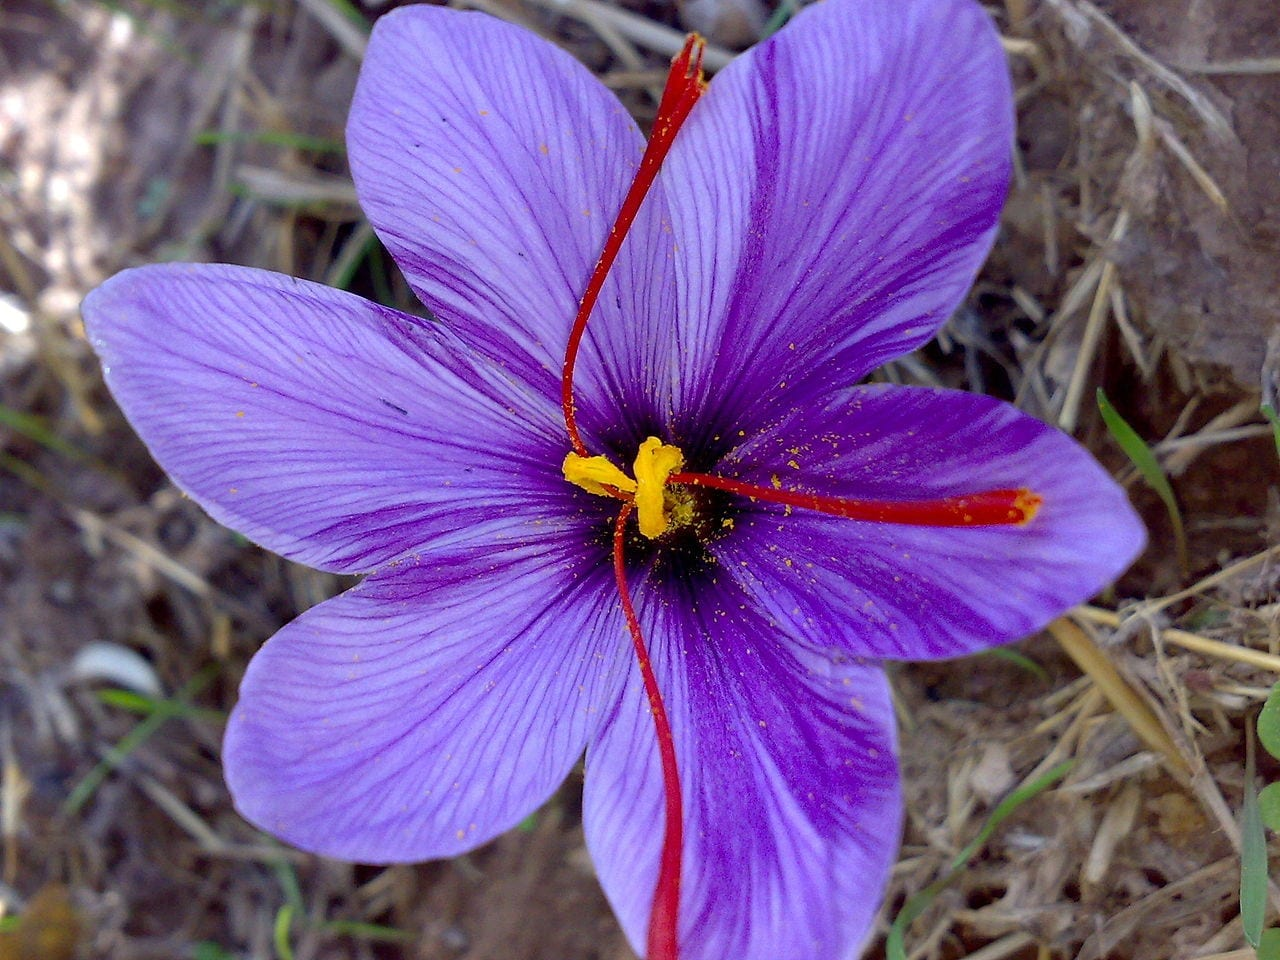 THE ULTIMATE GUIDE TO DRINKING SAFFRON FOR BEAUTY AND THE TOP 10 BENEFITS OF DRINKING SAFFRON WATER